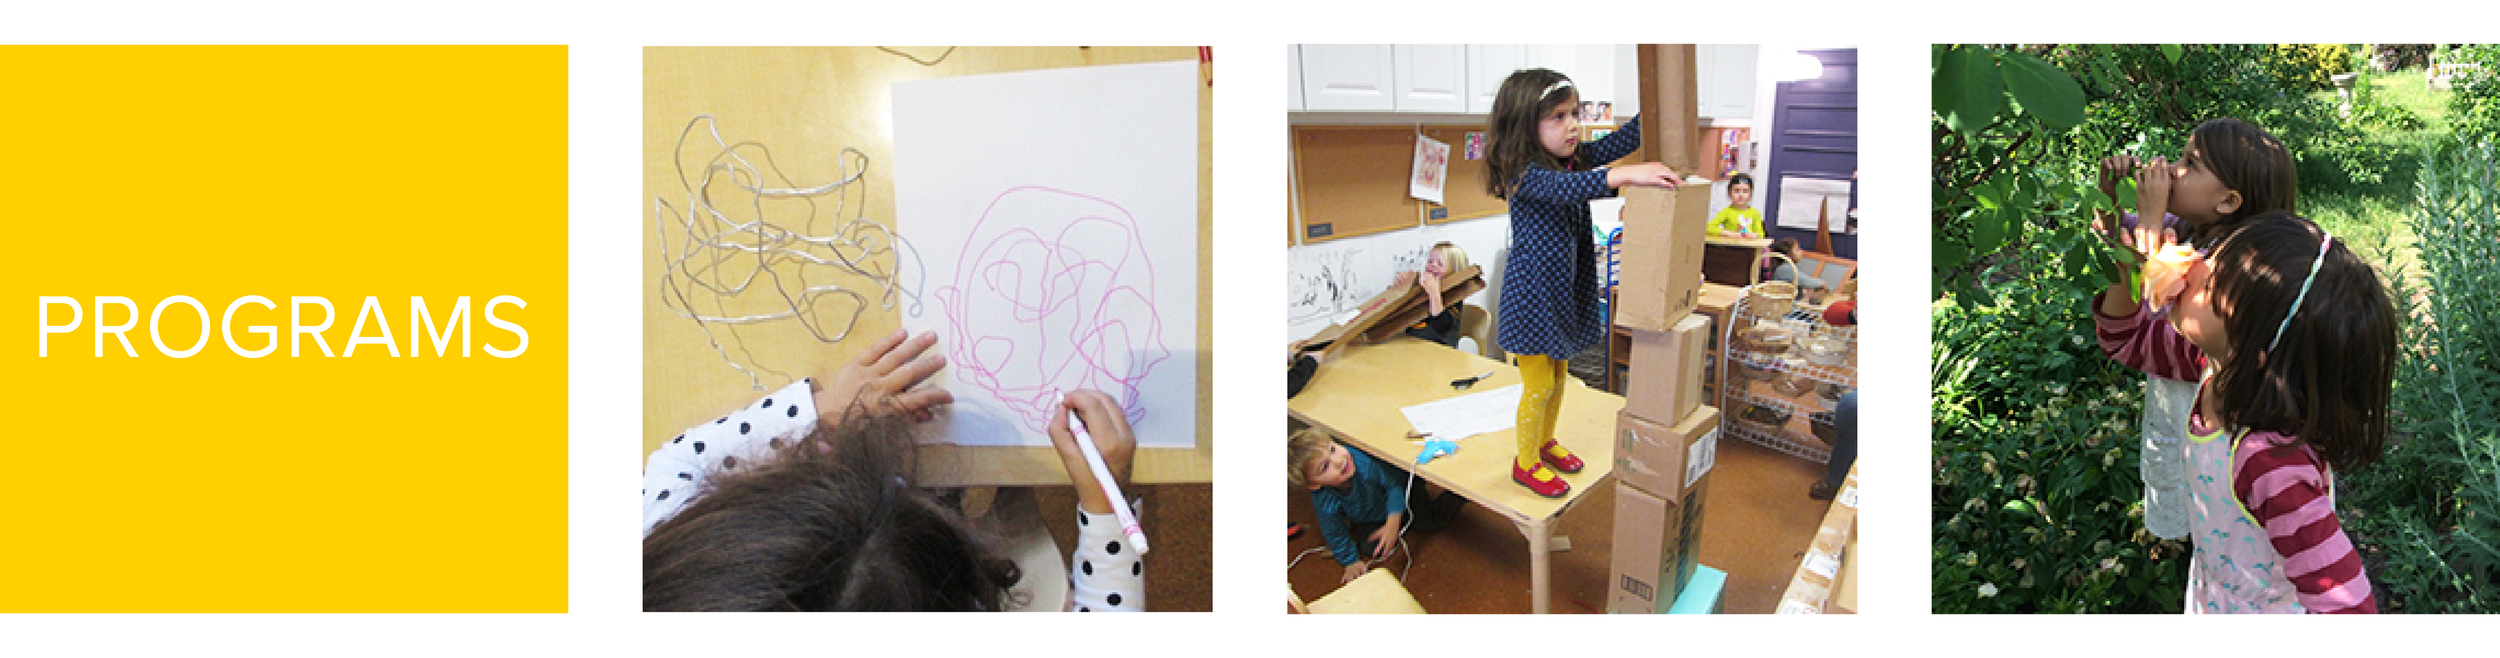 RED HOOK PLAYGROUP: OUR programs